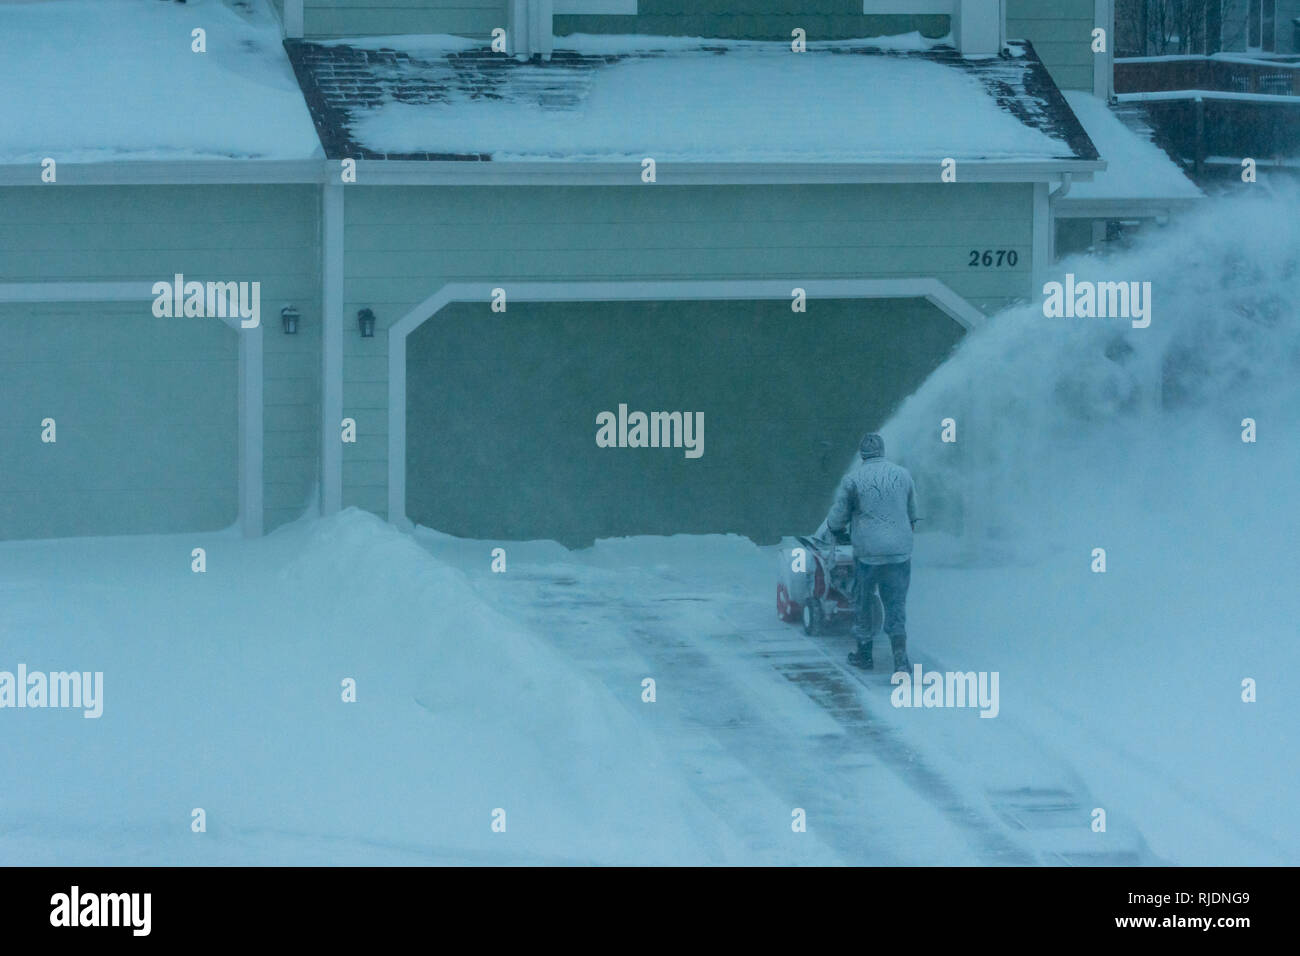 Homeowner uses motorized snow blower to clear snow from driveway during winter snowstorm, Castle Rock Colorado US. Photo taken in January. - Stock Image